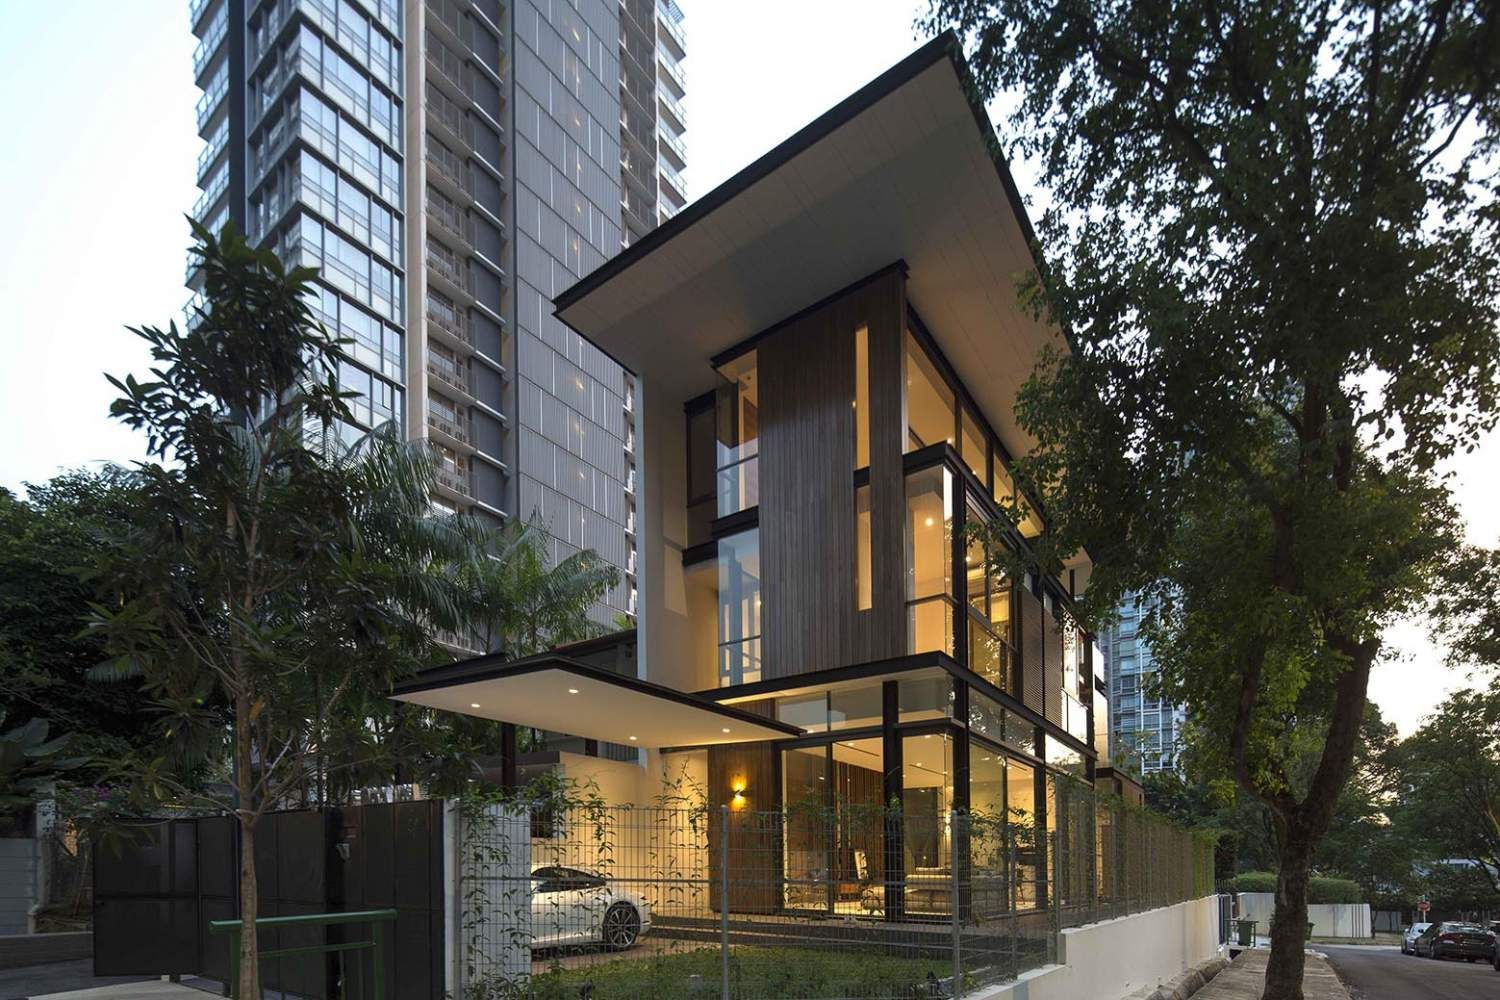 Modern terrace house design by AR43 Architects features seamless mix of  indoors and outdoors.